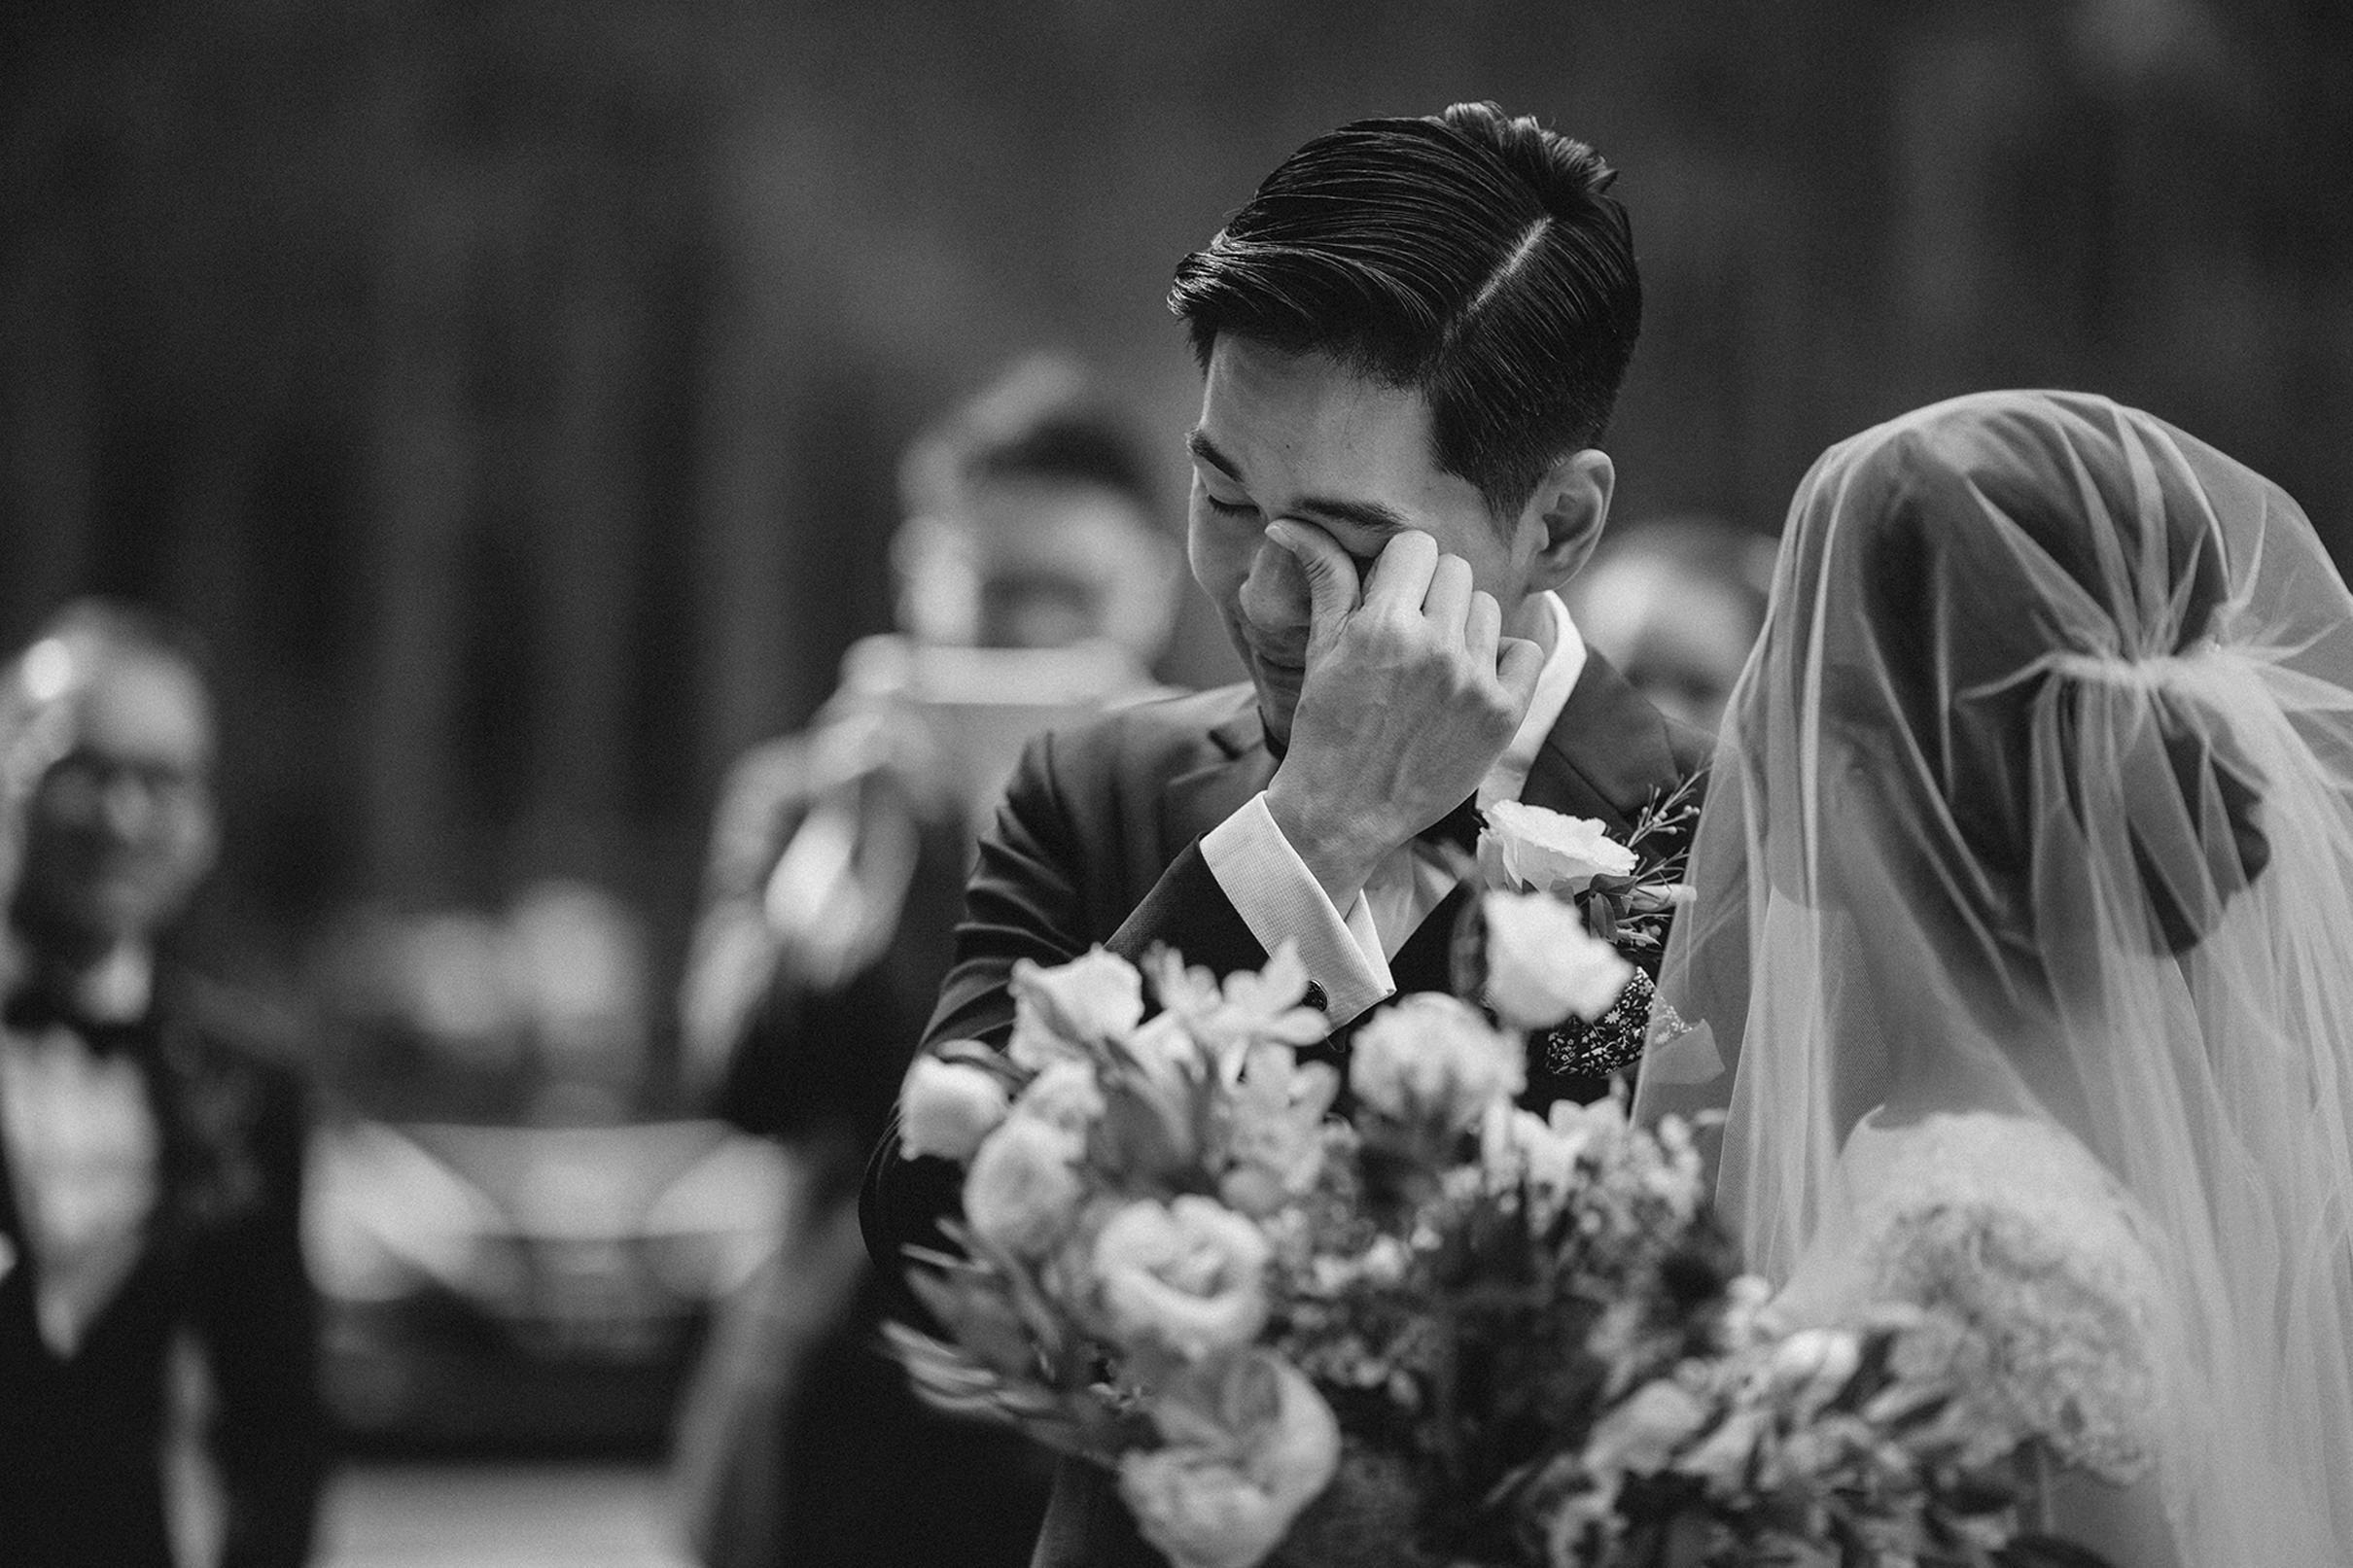 Groom tearing up at ceremony - Photo by MunKeat Photography Studio